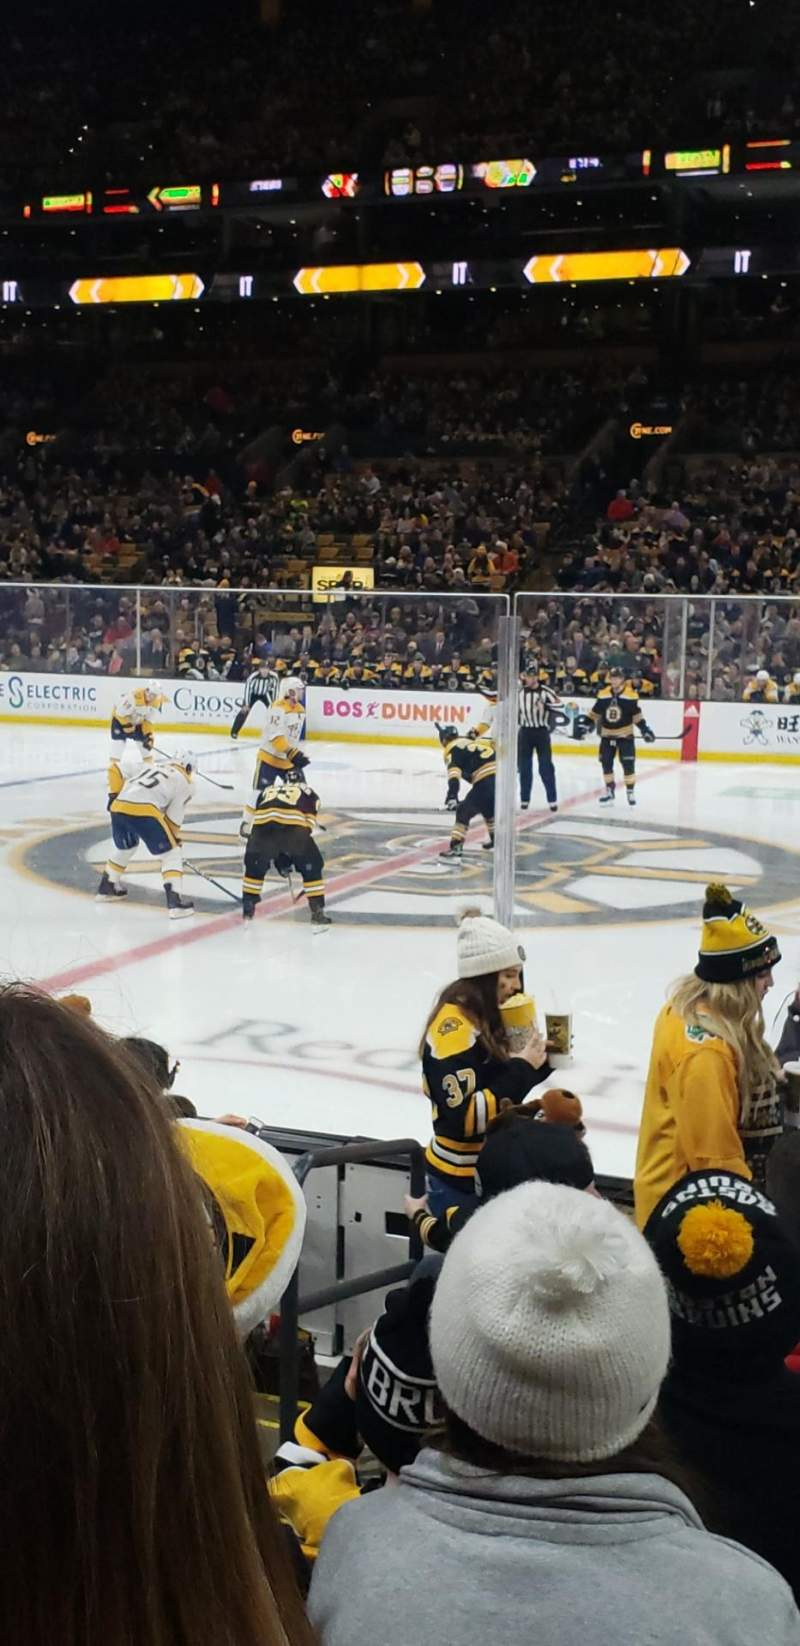 Seating view for TD Garden Section Loge 11 Row 7 Seat 16